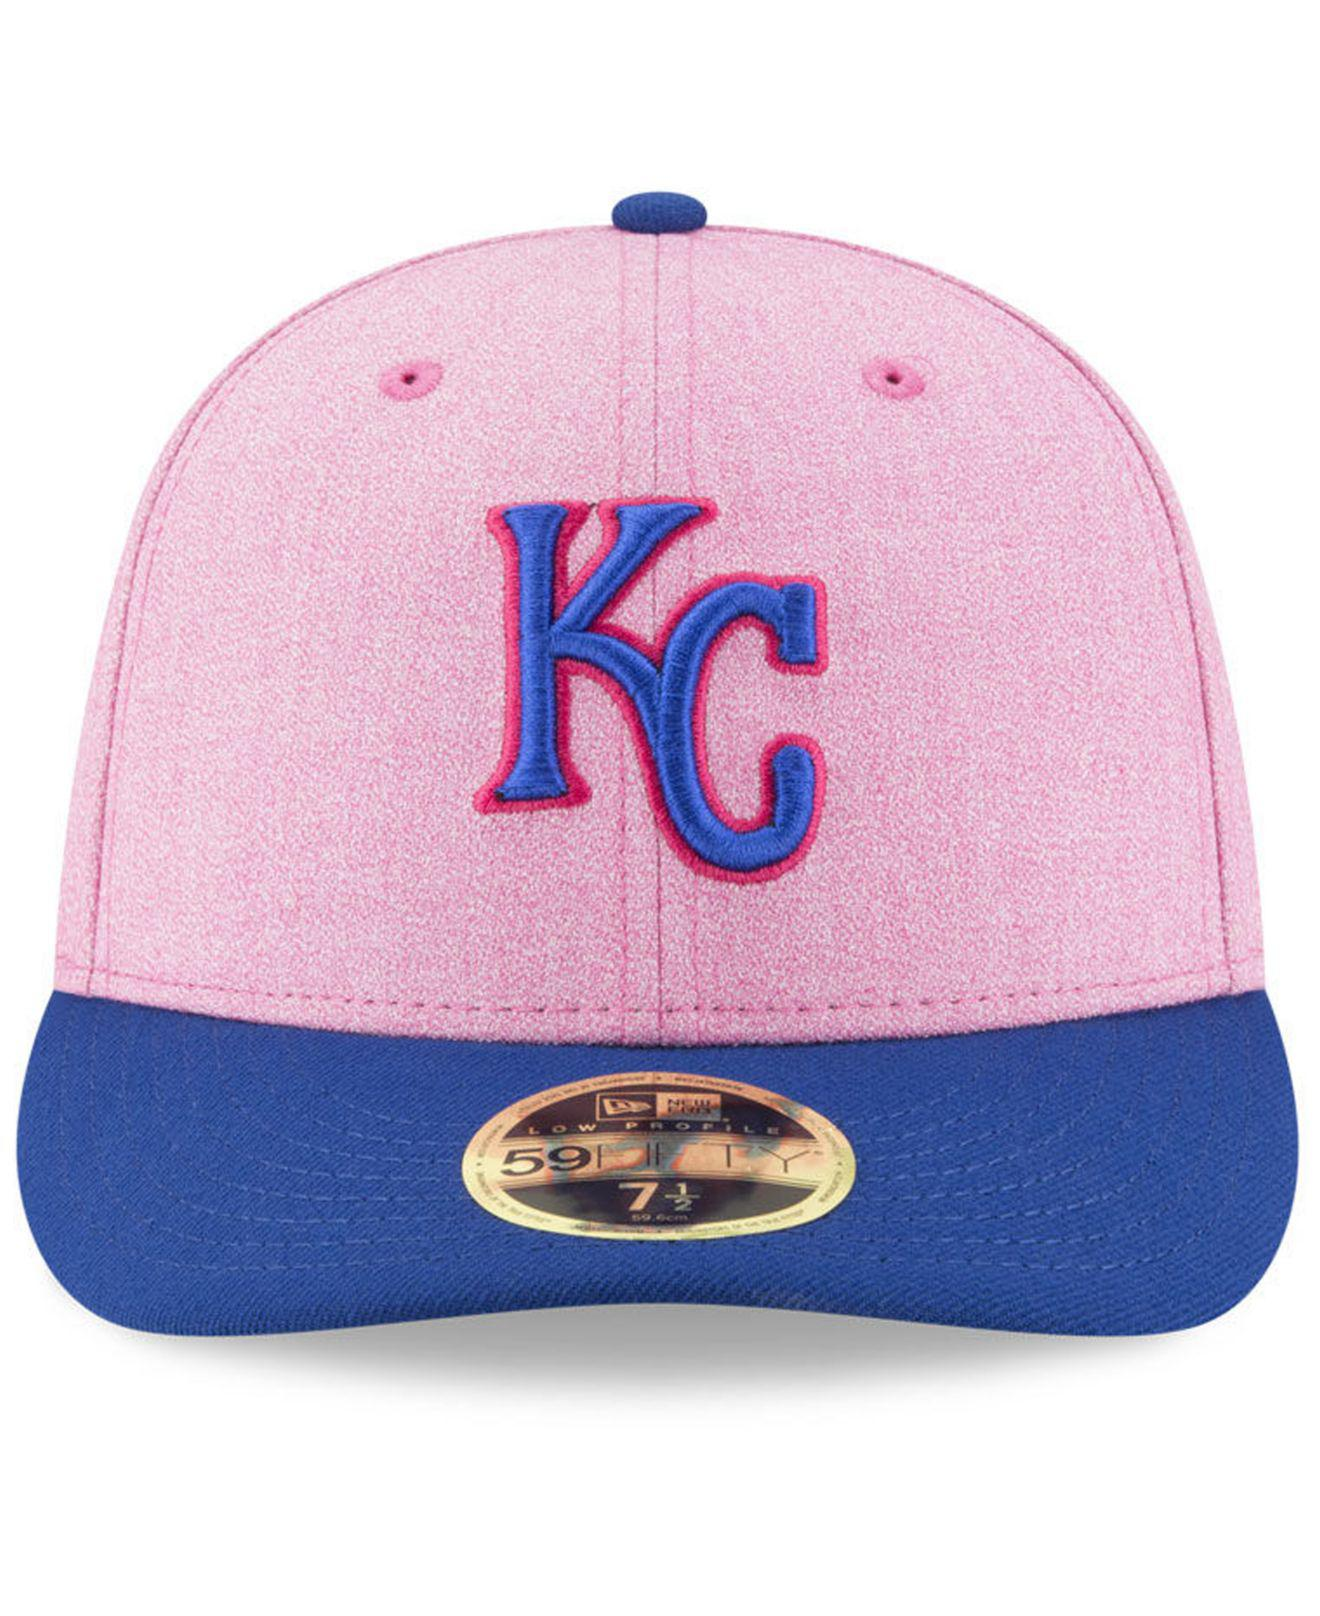 44be7e49f09 Lyst - KTZ Kansas City Royals Mothers Day Low Profile 59fifty Fitted Cap in  Pink